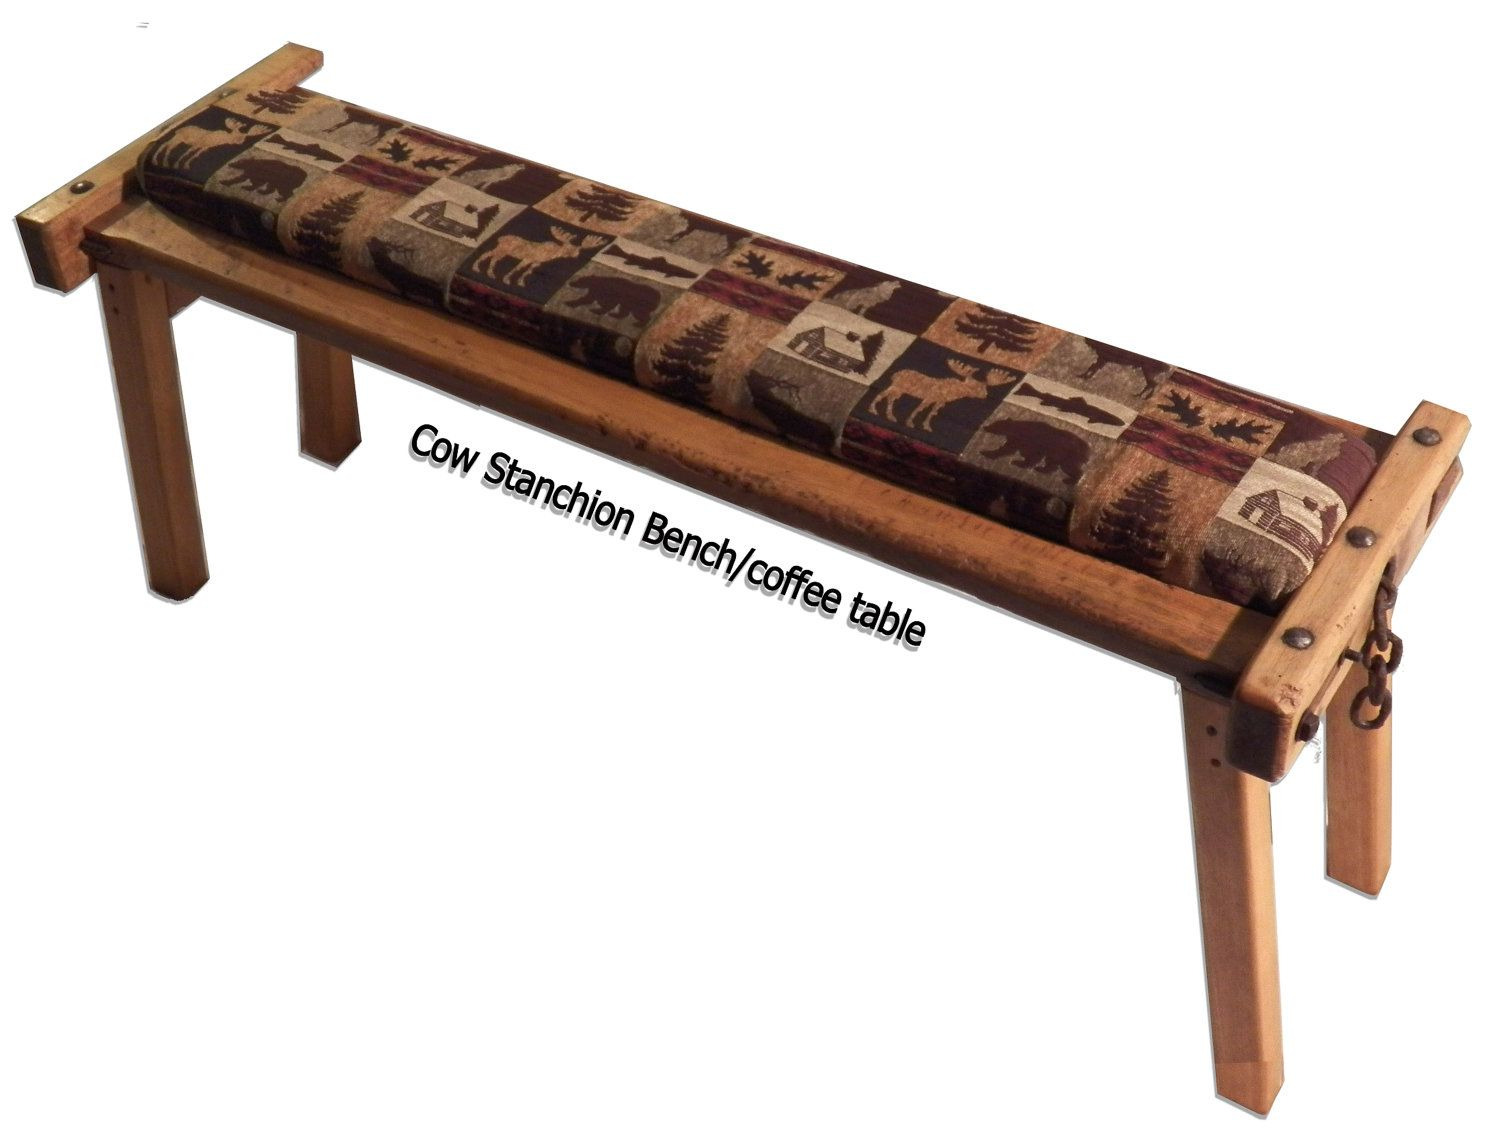 Antique Wooden Cow Stanchion Bench And Coffee Table Top